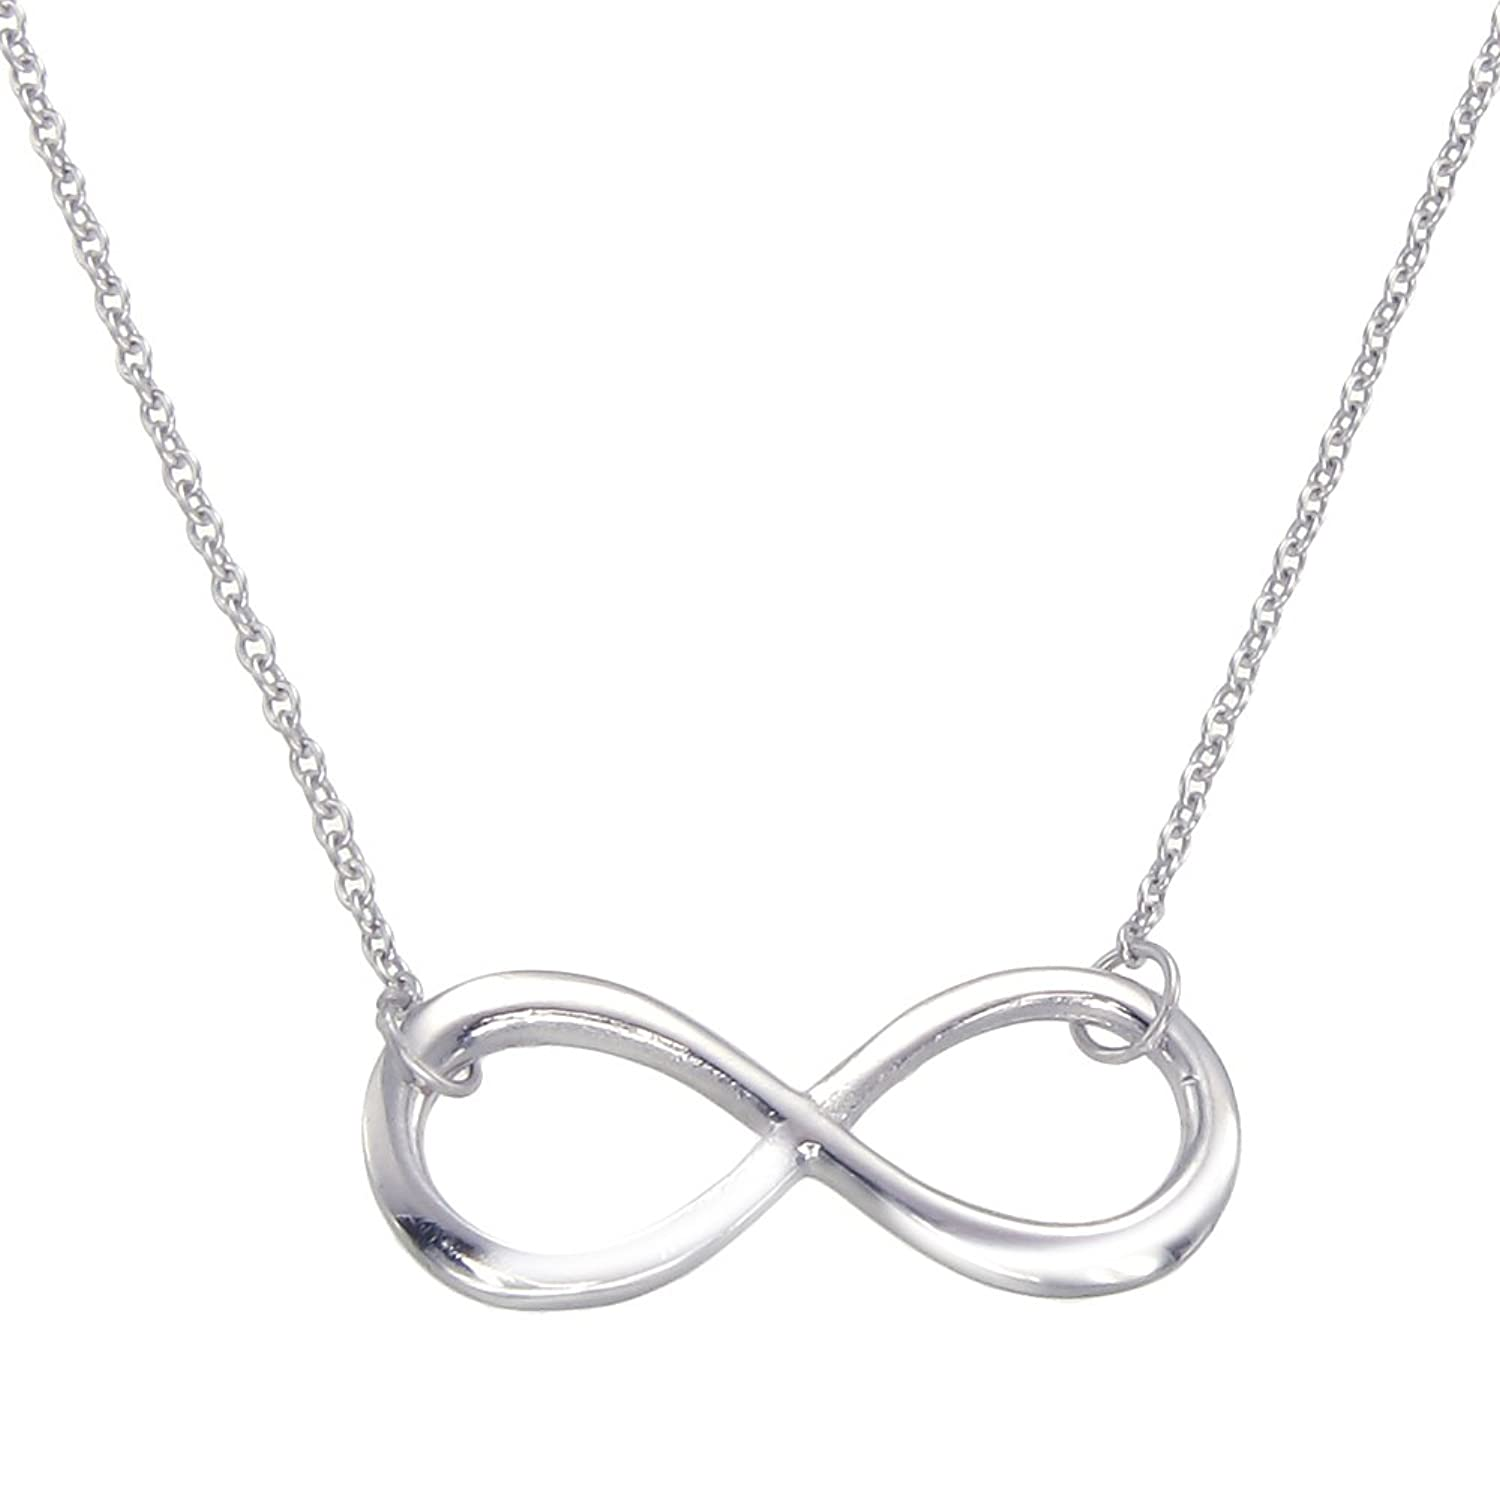 Sterling Silver Infinity Pendant Mancini Amazon Jewellery